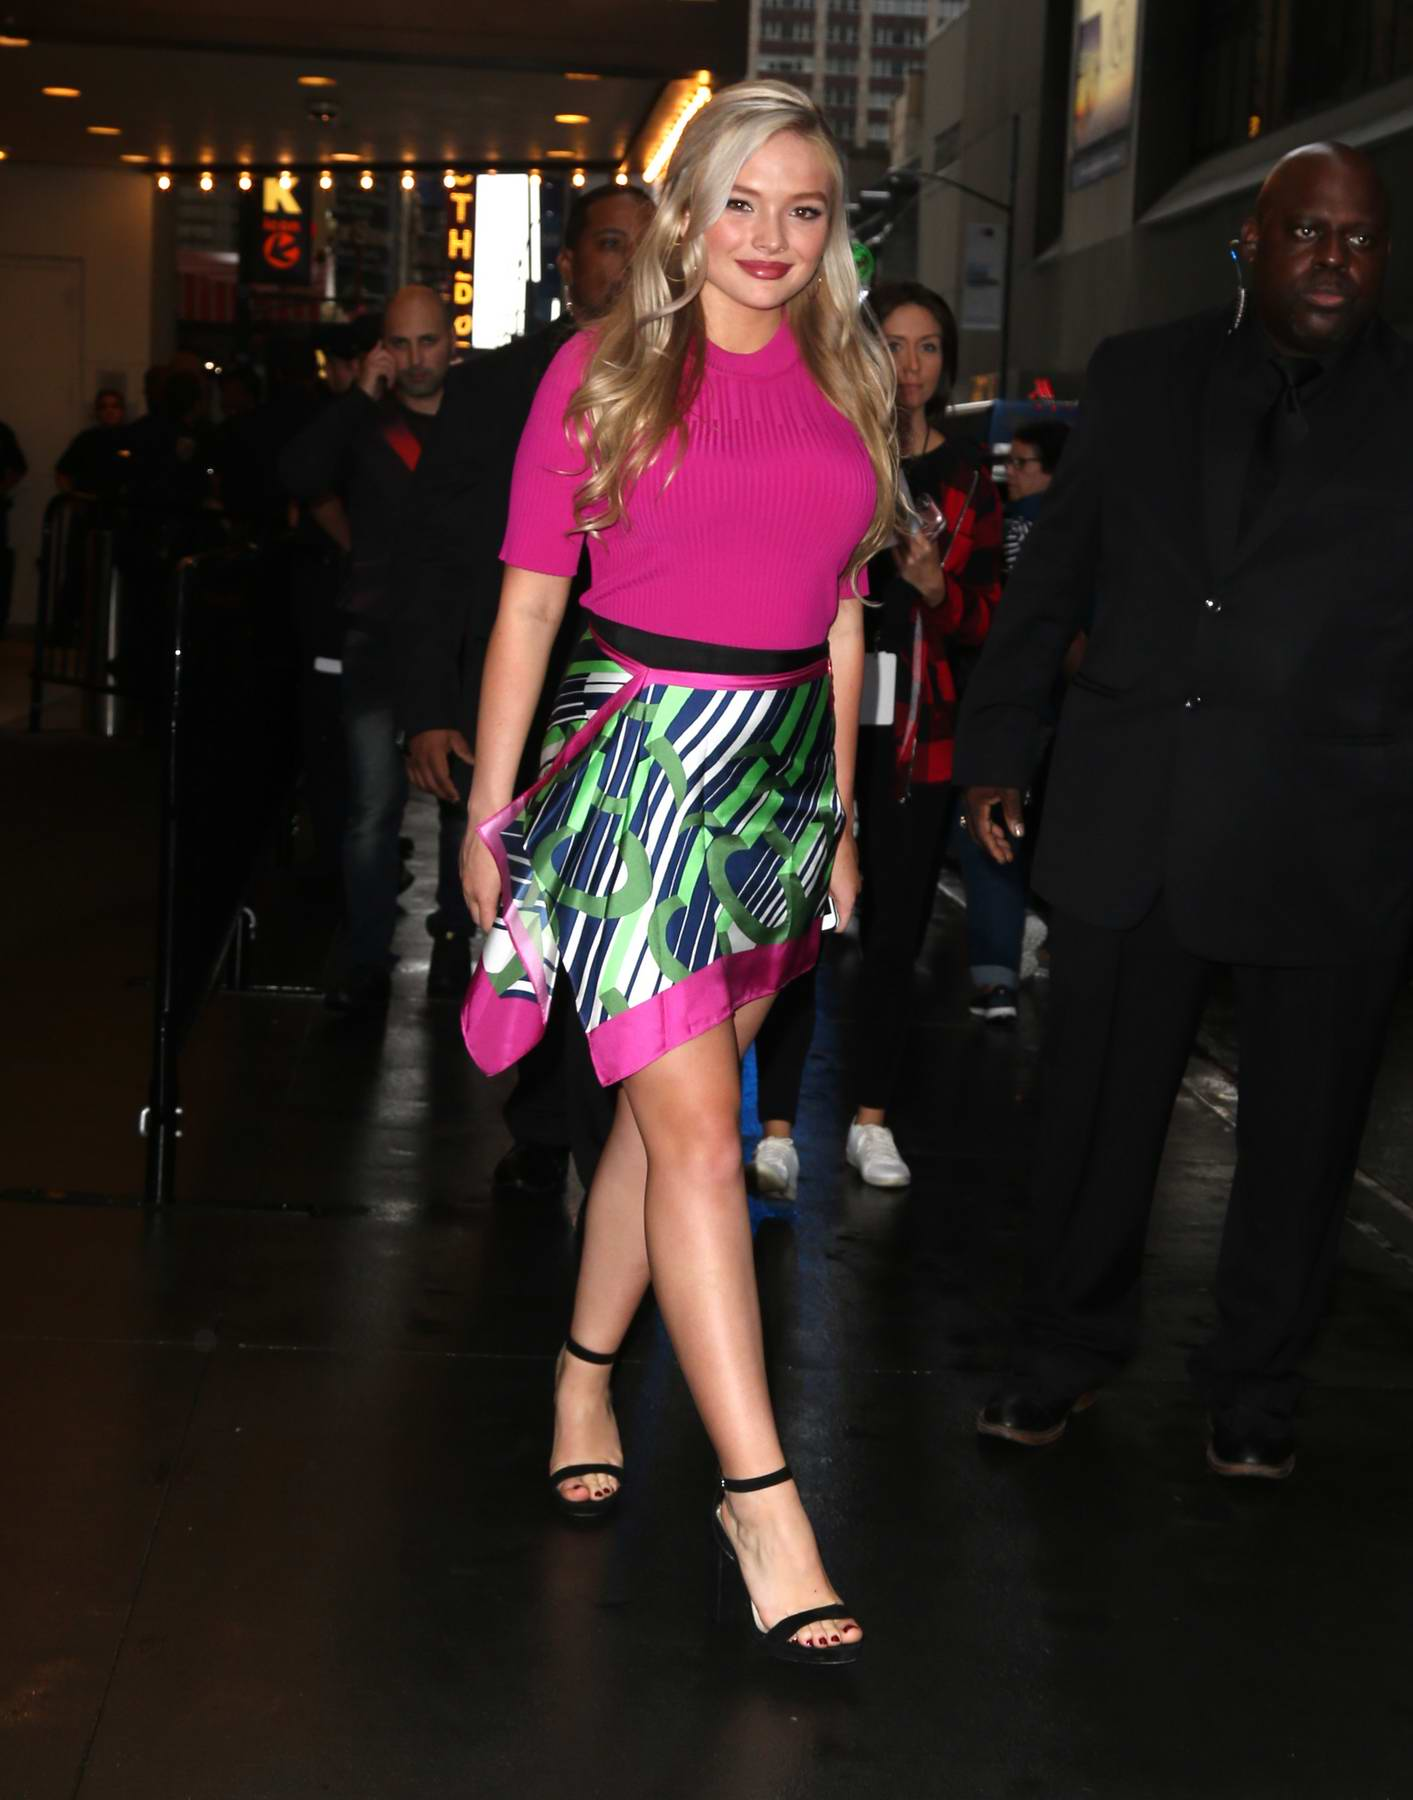 Natalie Alyn Lind in a pink dress arrives at Total Request Live (TRL) in New York City